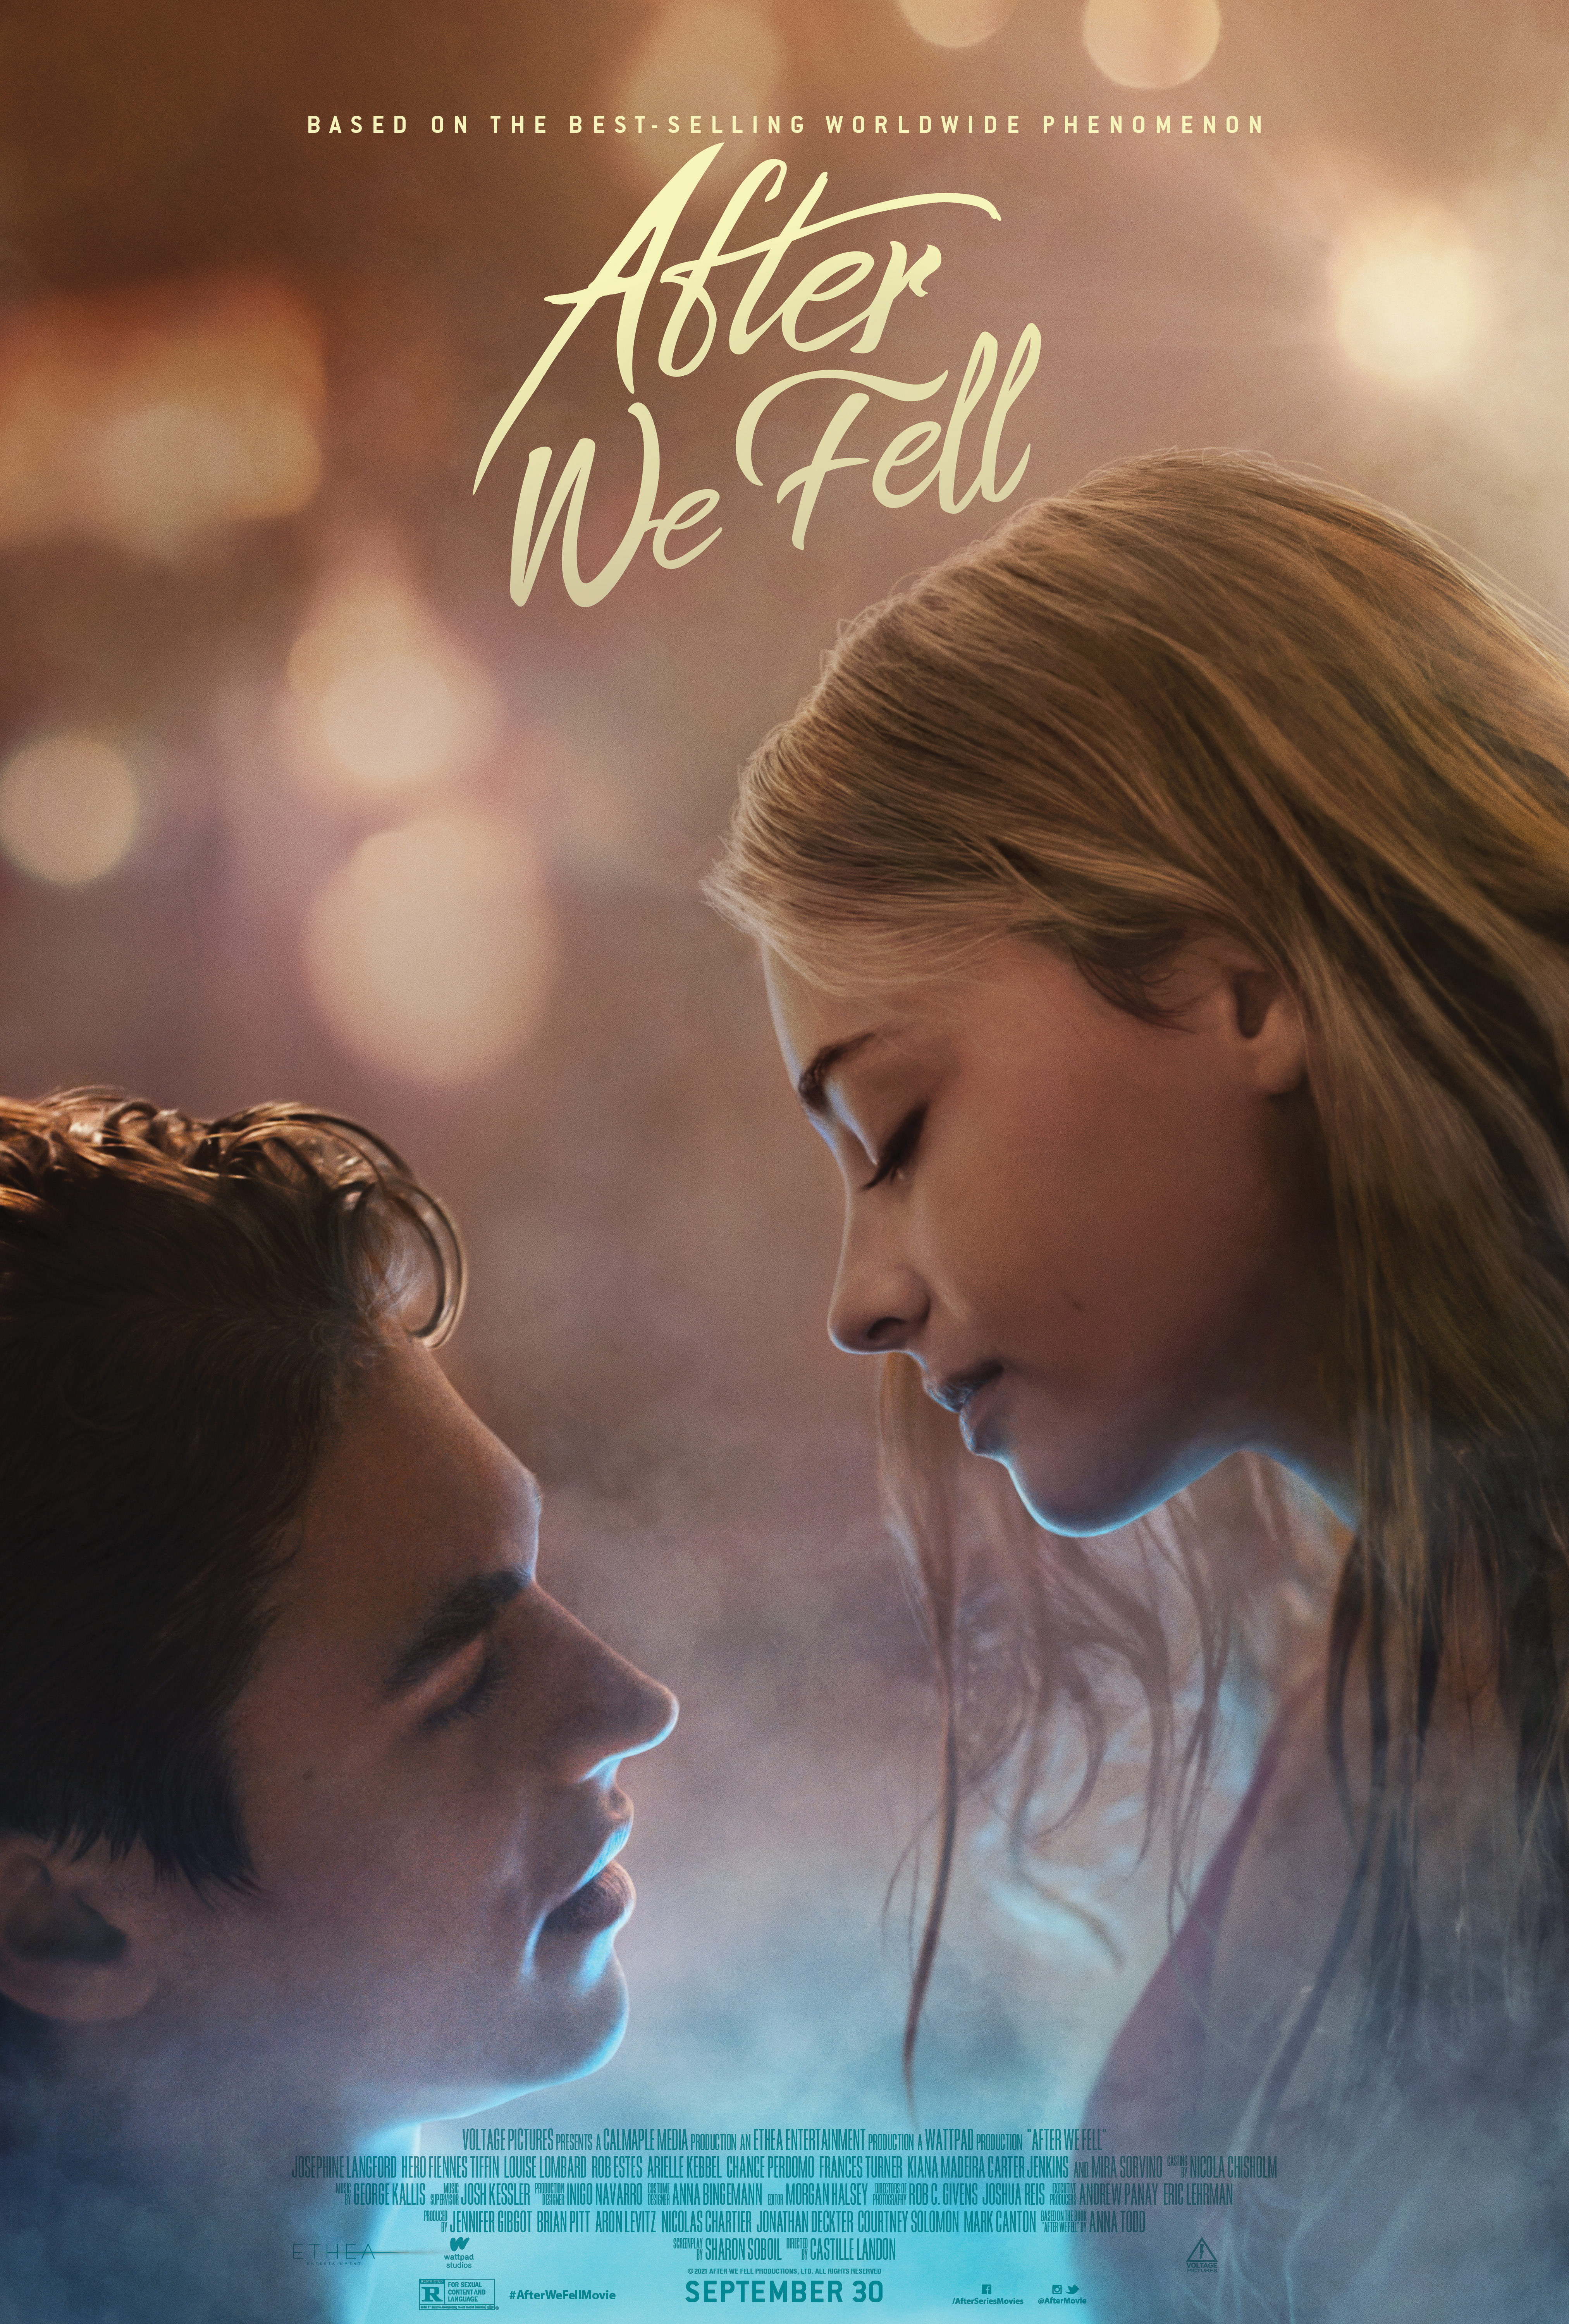 See The After We Fell Romantic Hessa Clip